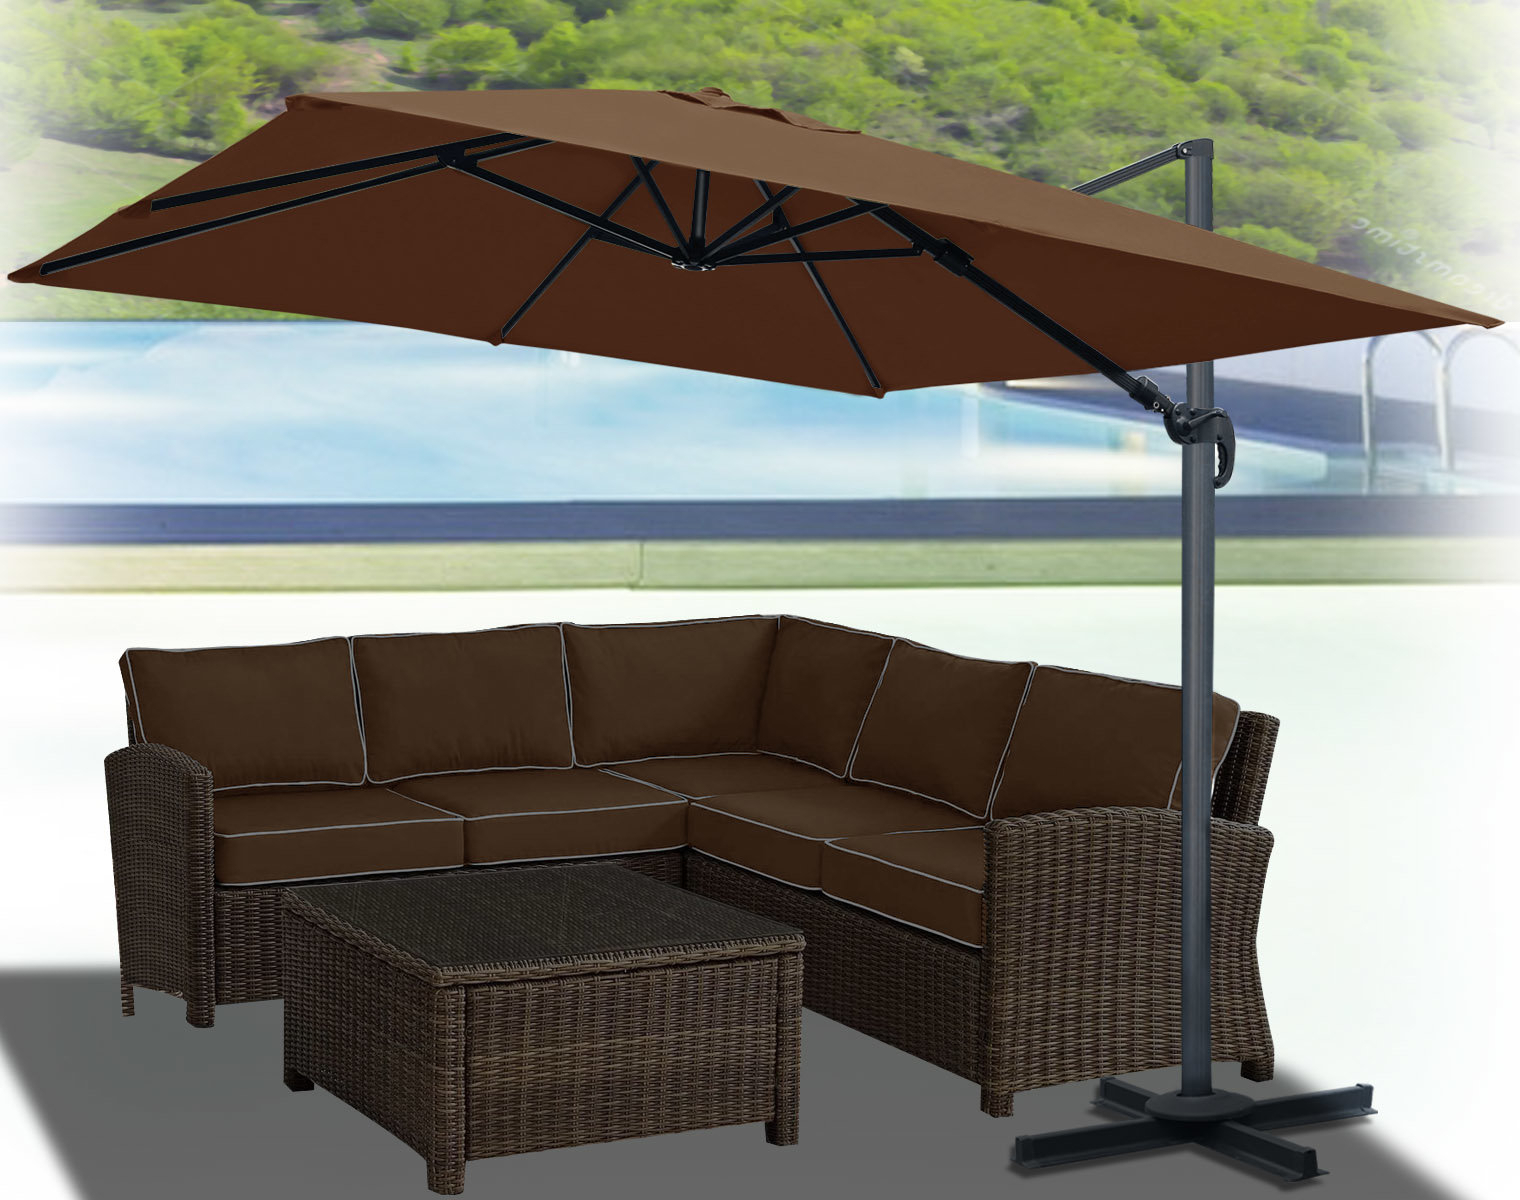 Famous Spitler Square Cantilever Umbrellas Regarding Klass Hanging Patio 10' Square Cantilever Umbrella (View 5 of 20)